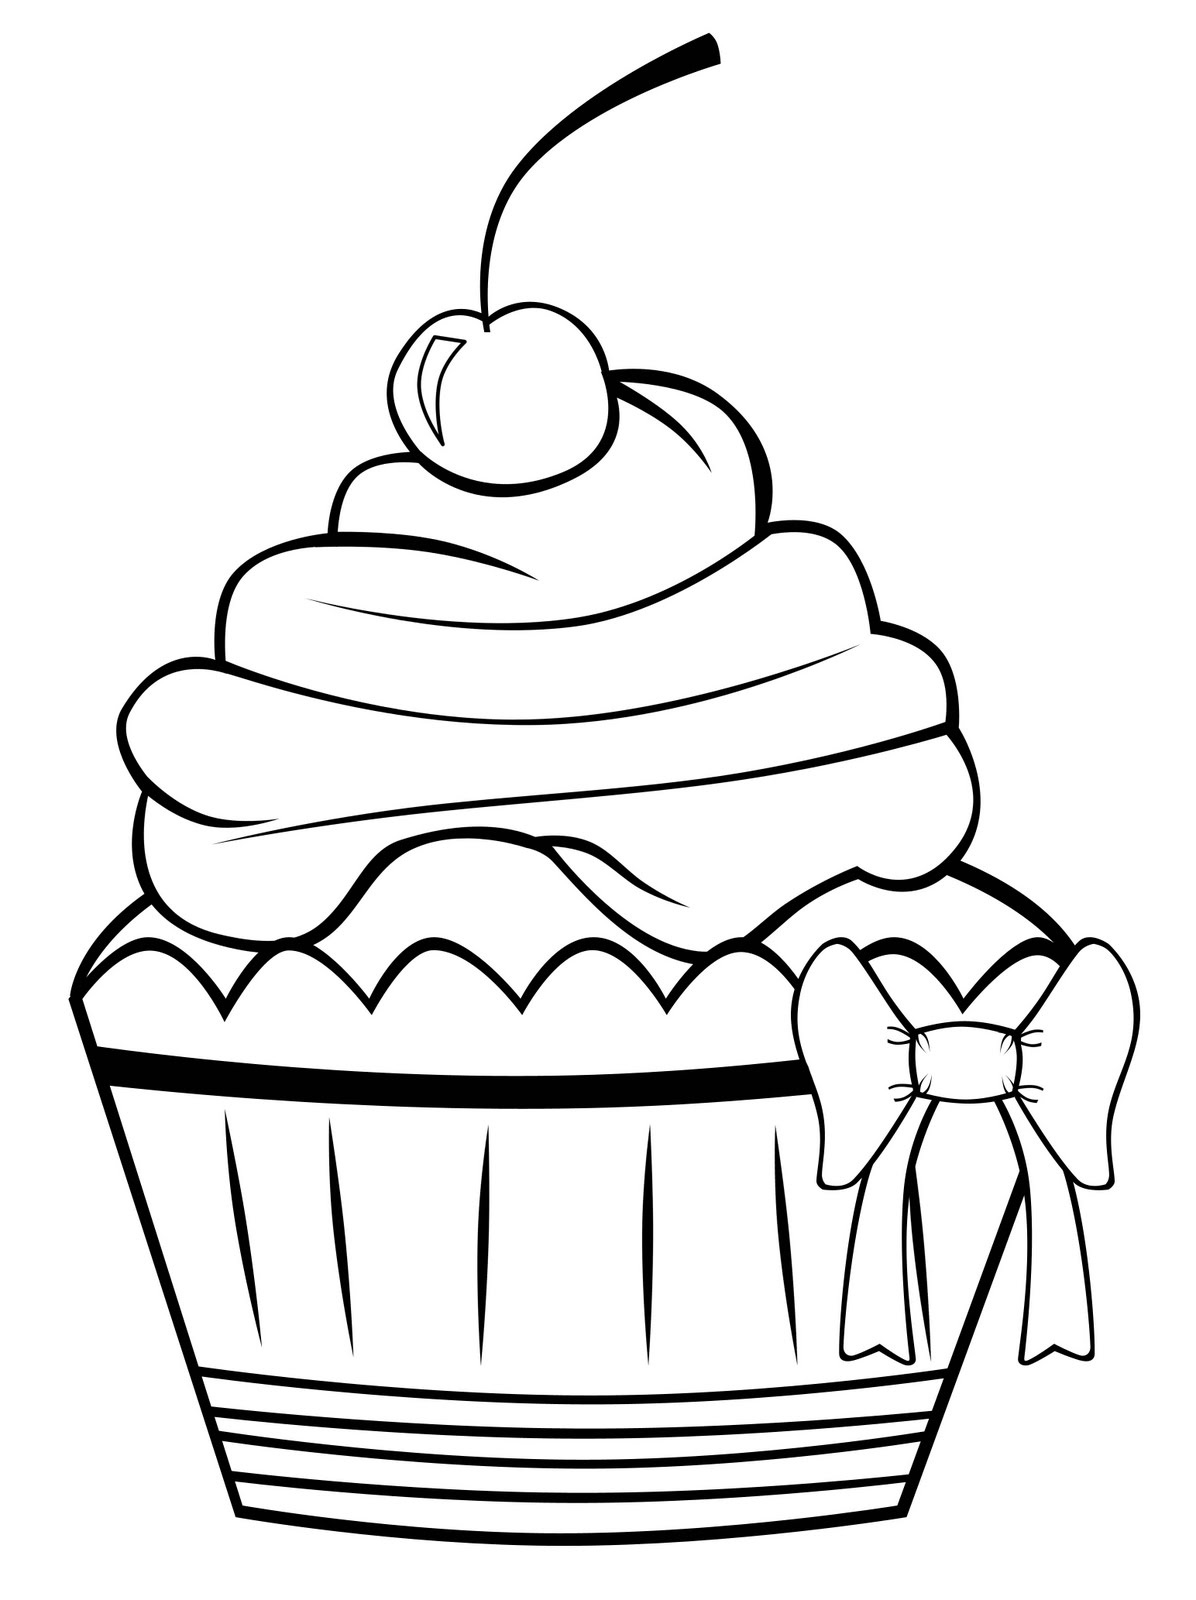 1196x1600 Free Printable Cupcake Coloring Pages For Kids